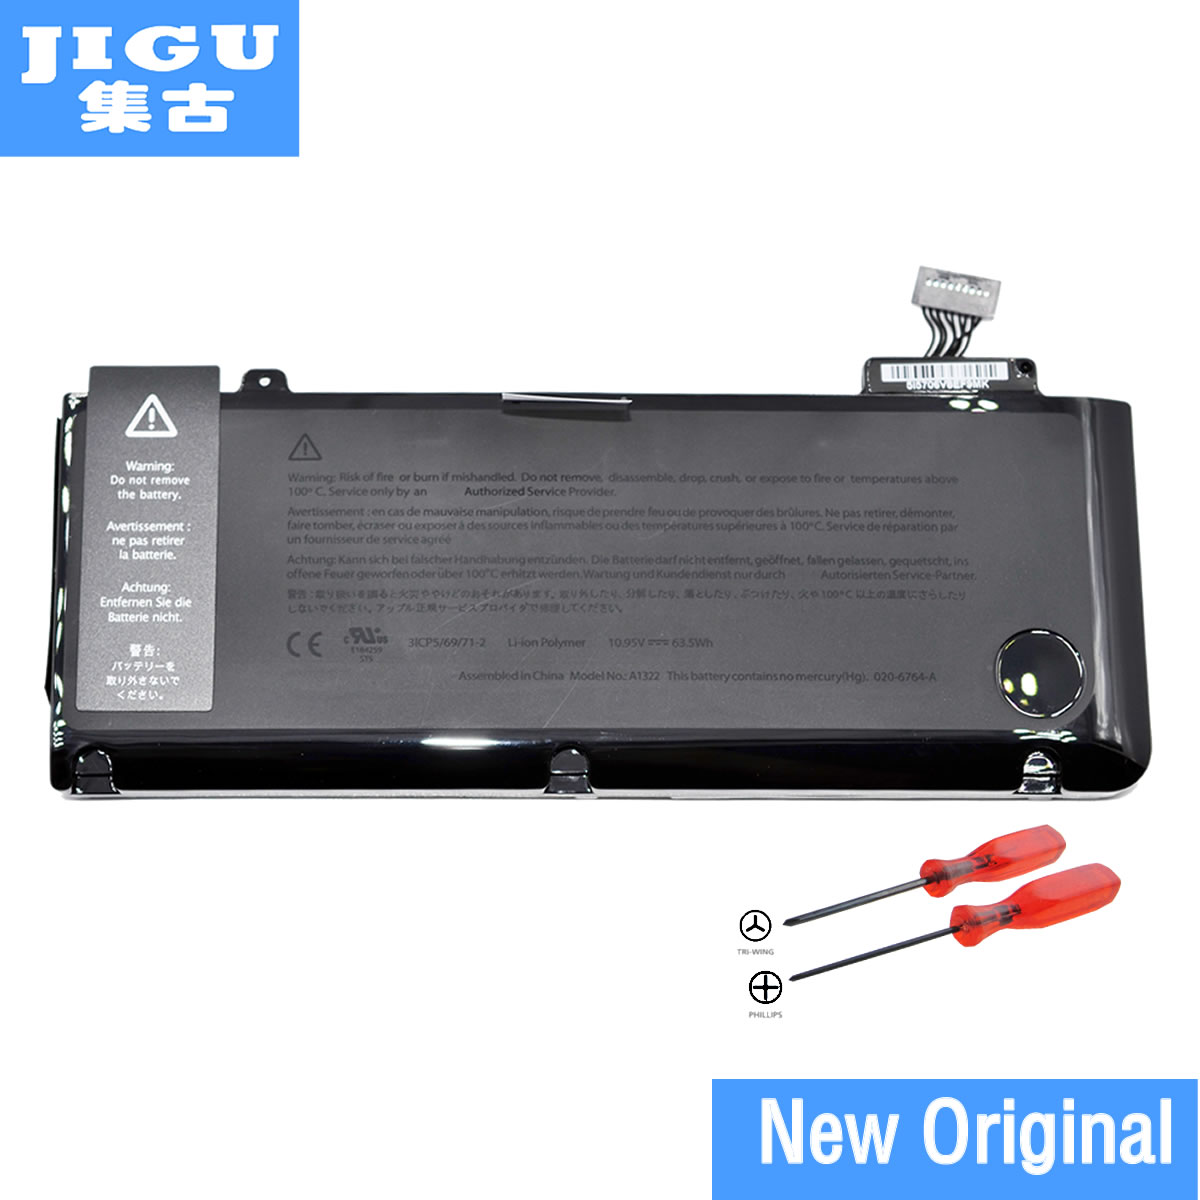 JIGU A1322 Original Laptop Battery For APPLE MacBook Pro 13 A1278 mb990 mb991 mc700 mc374 md212 md313 md101 MD314 MC724 MC375 детский набор для моделирования low temperature stirling engine model stirling ls001